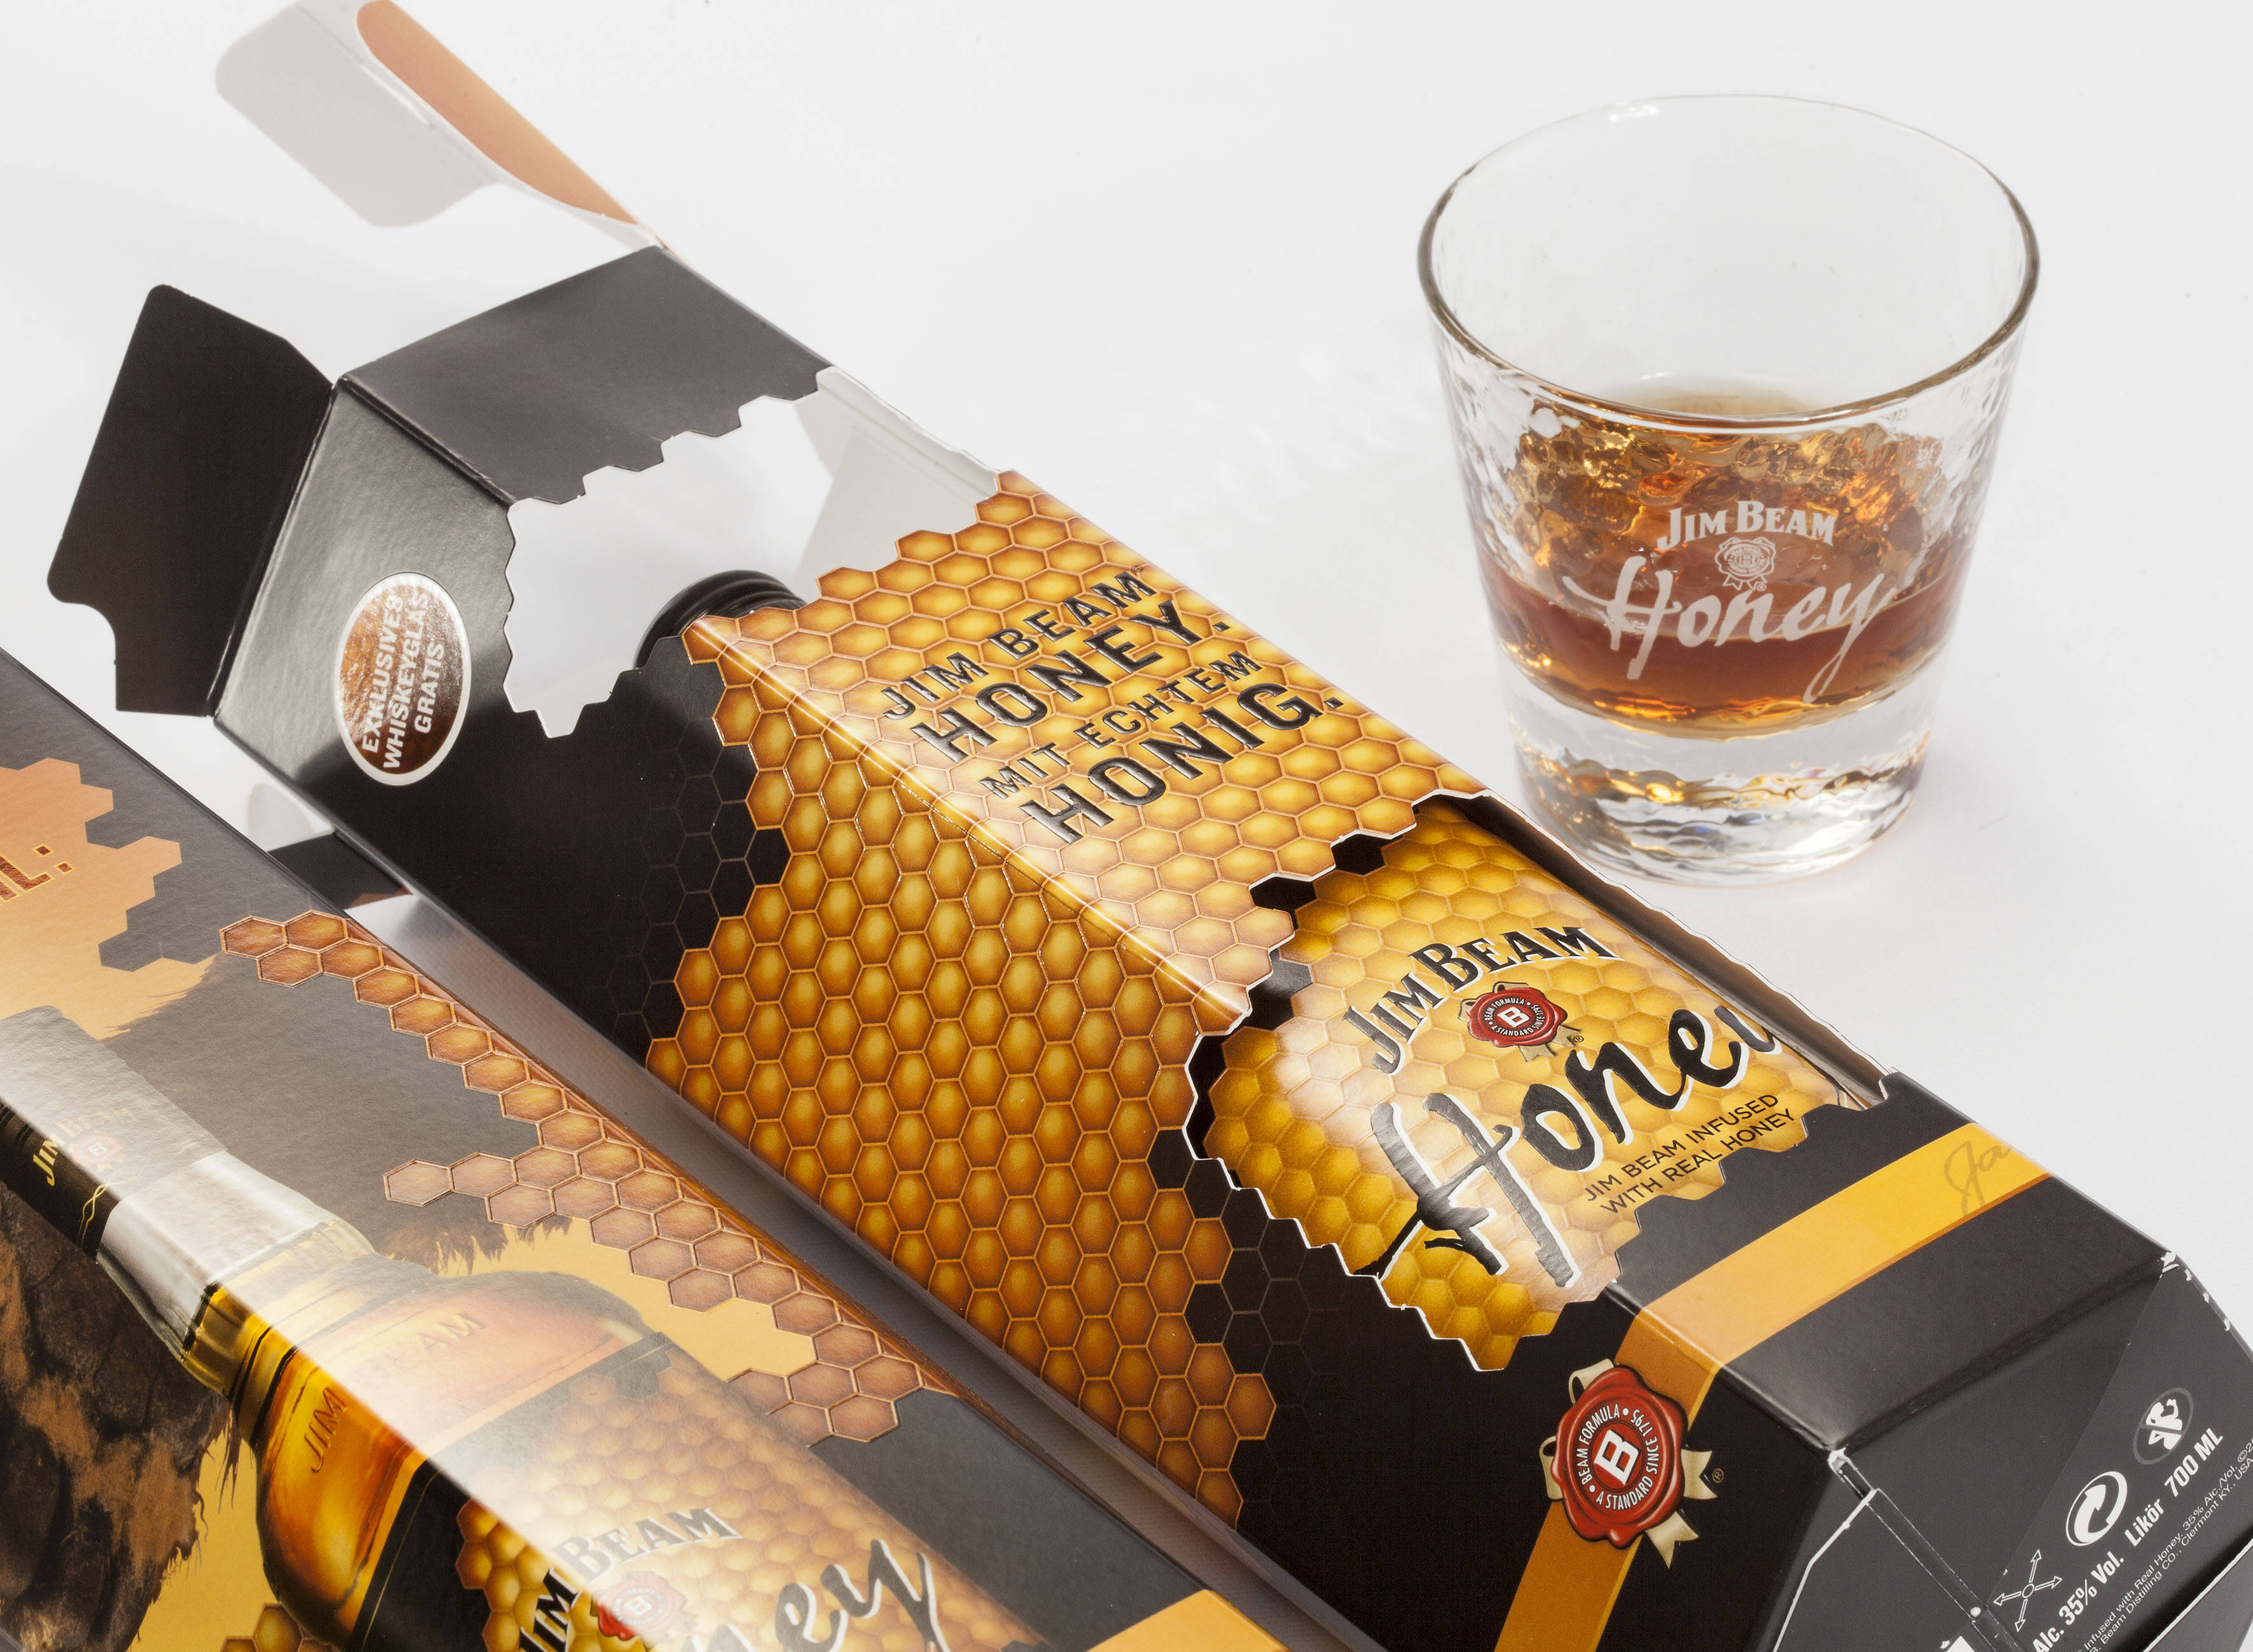 Jim Beam Honey Promotional Packaging